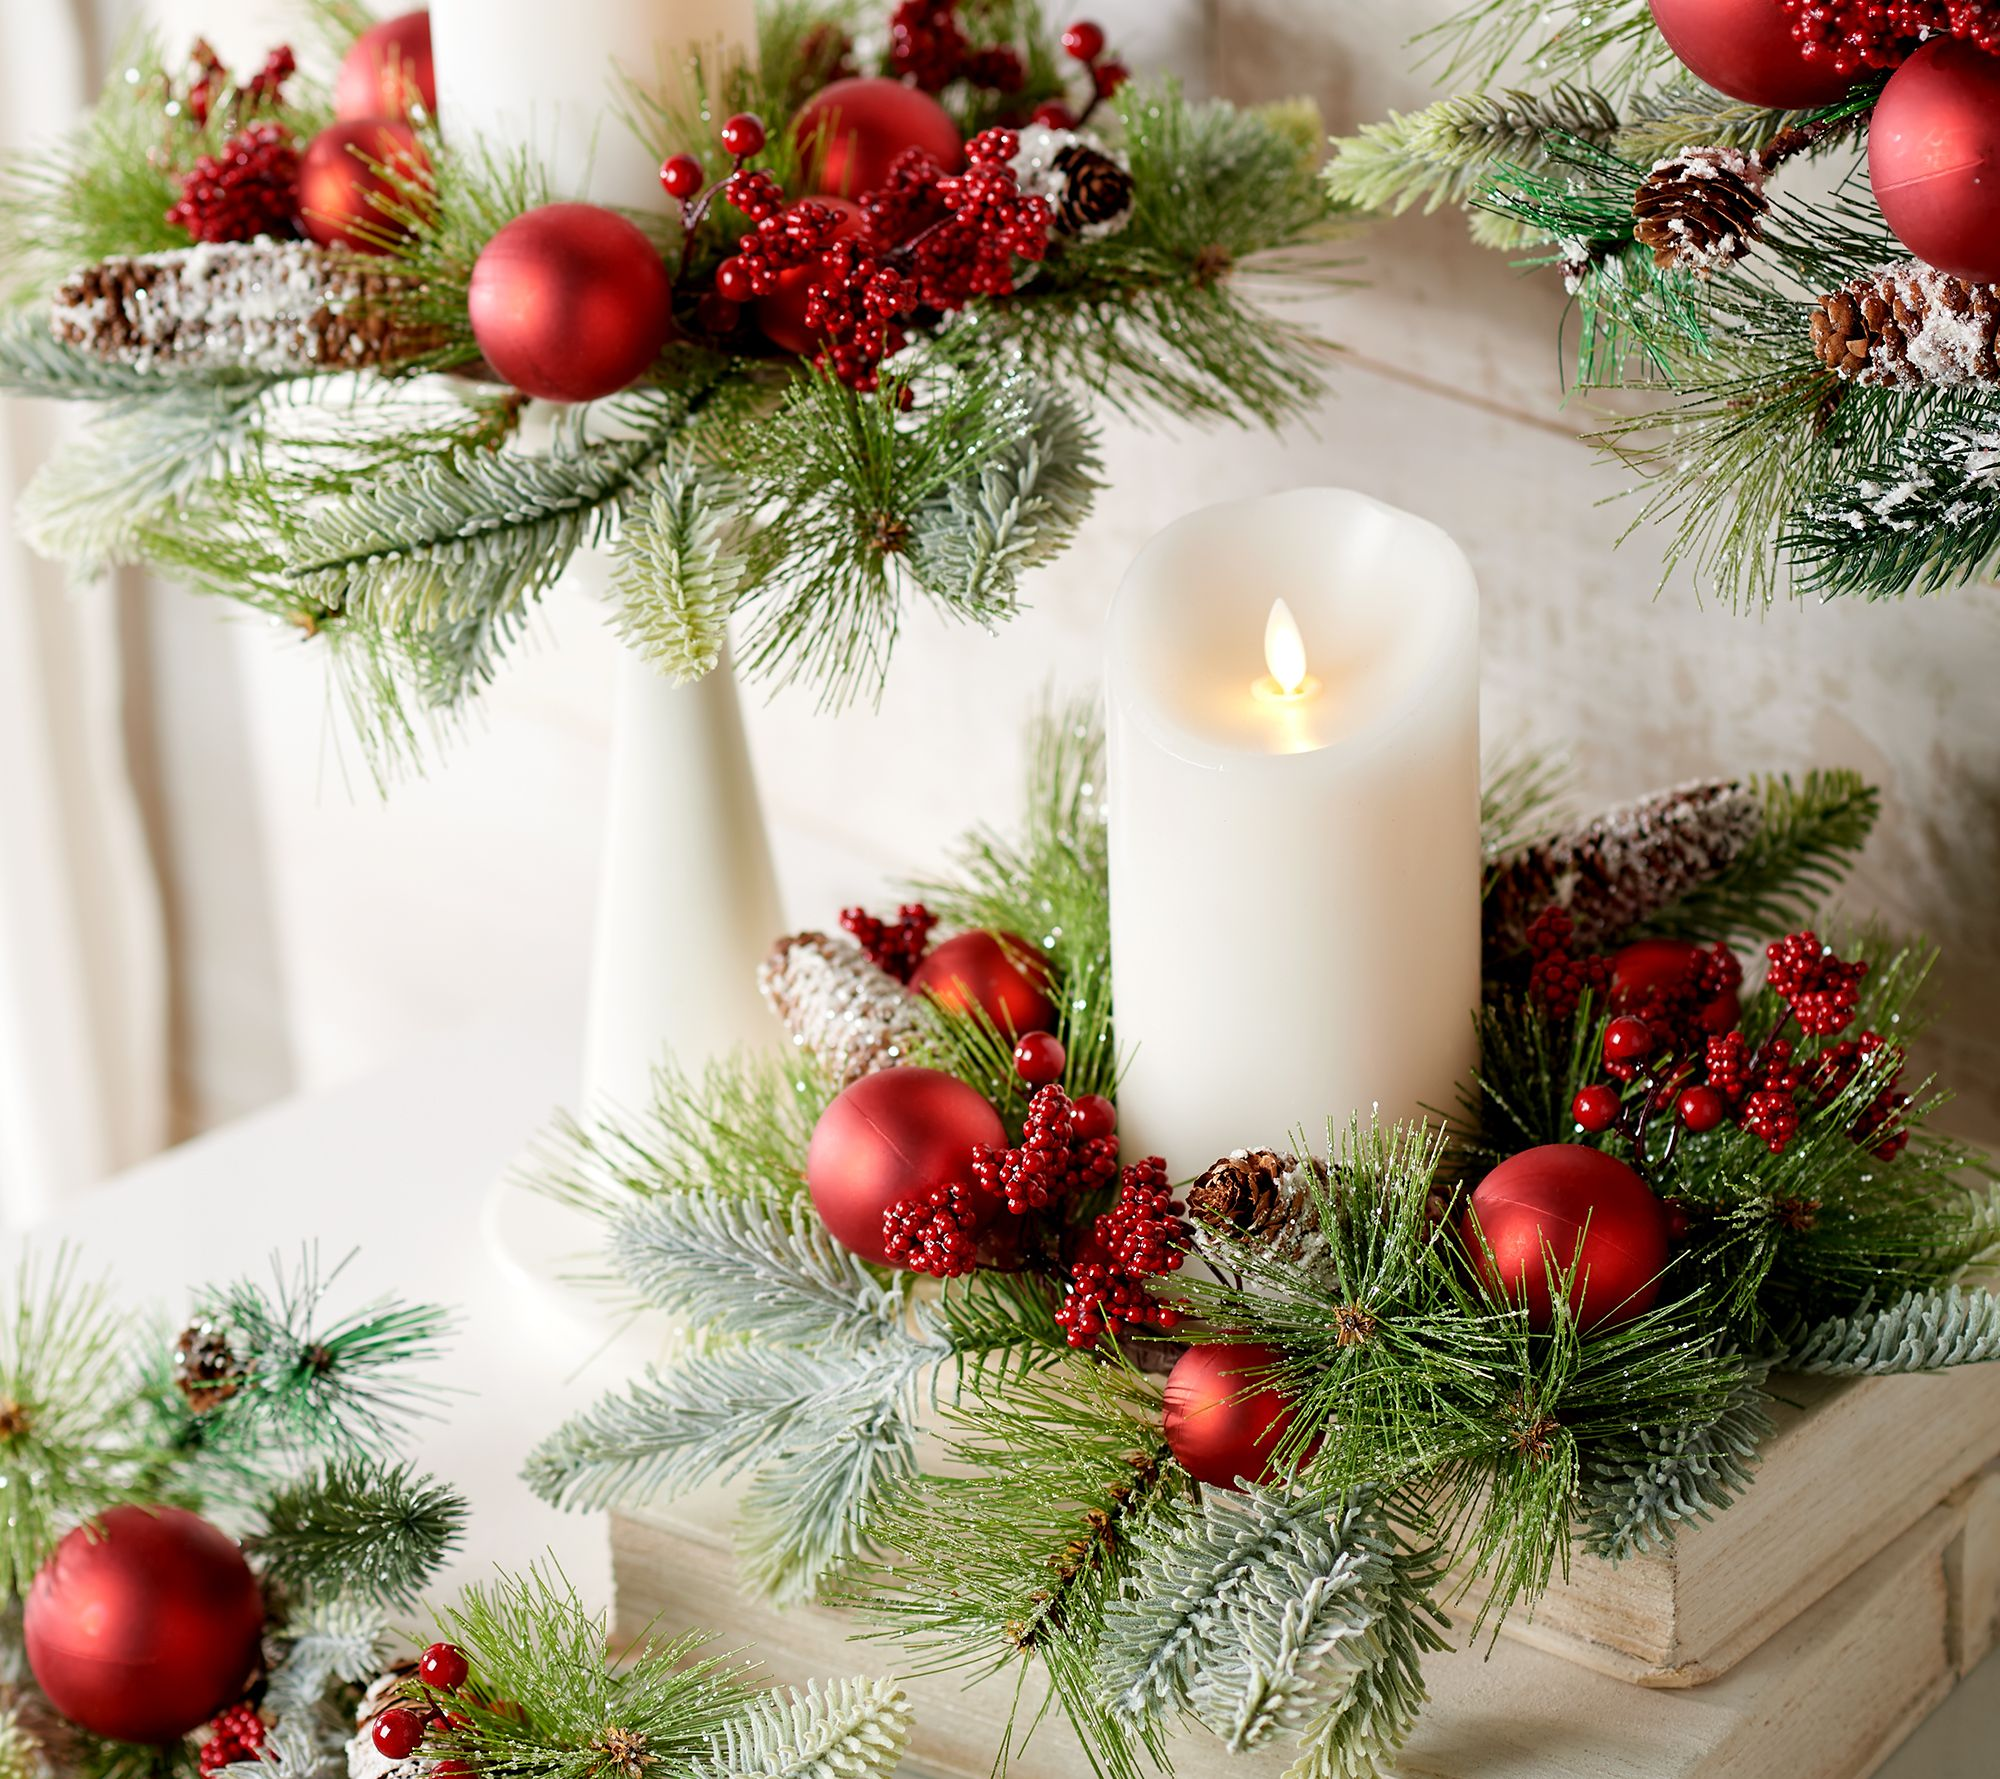 Christmas Candle Rings.Set Of 2 Frosted Pine And Ornament Candle Rings By Valerie Qvc Com